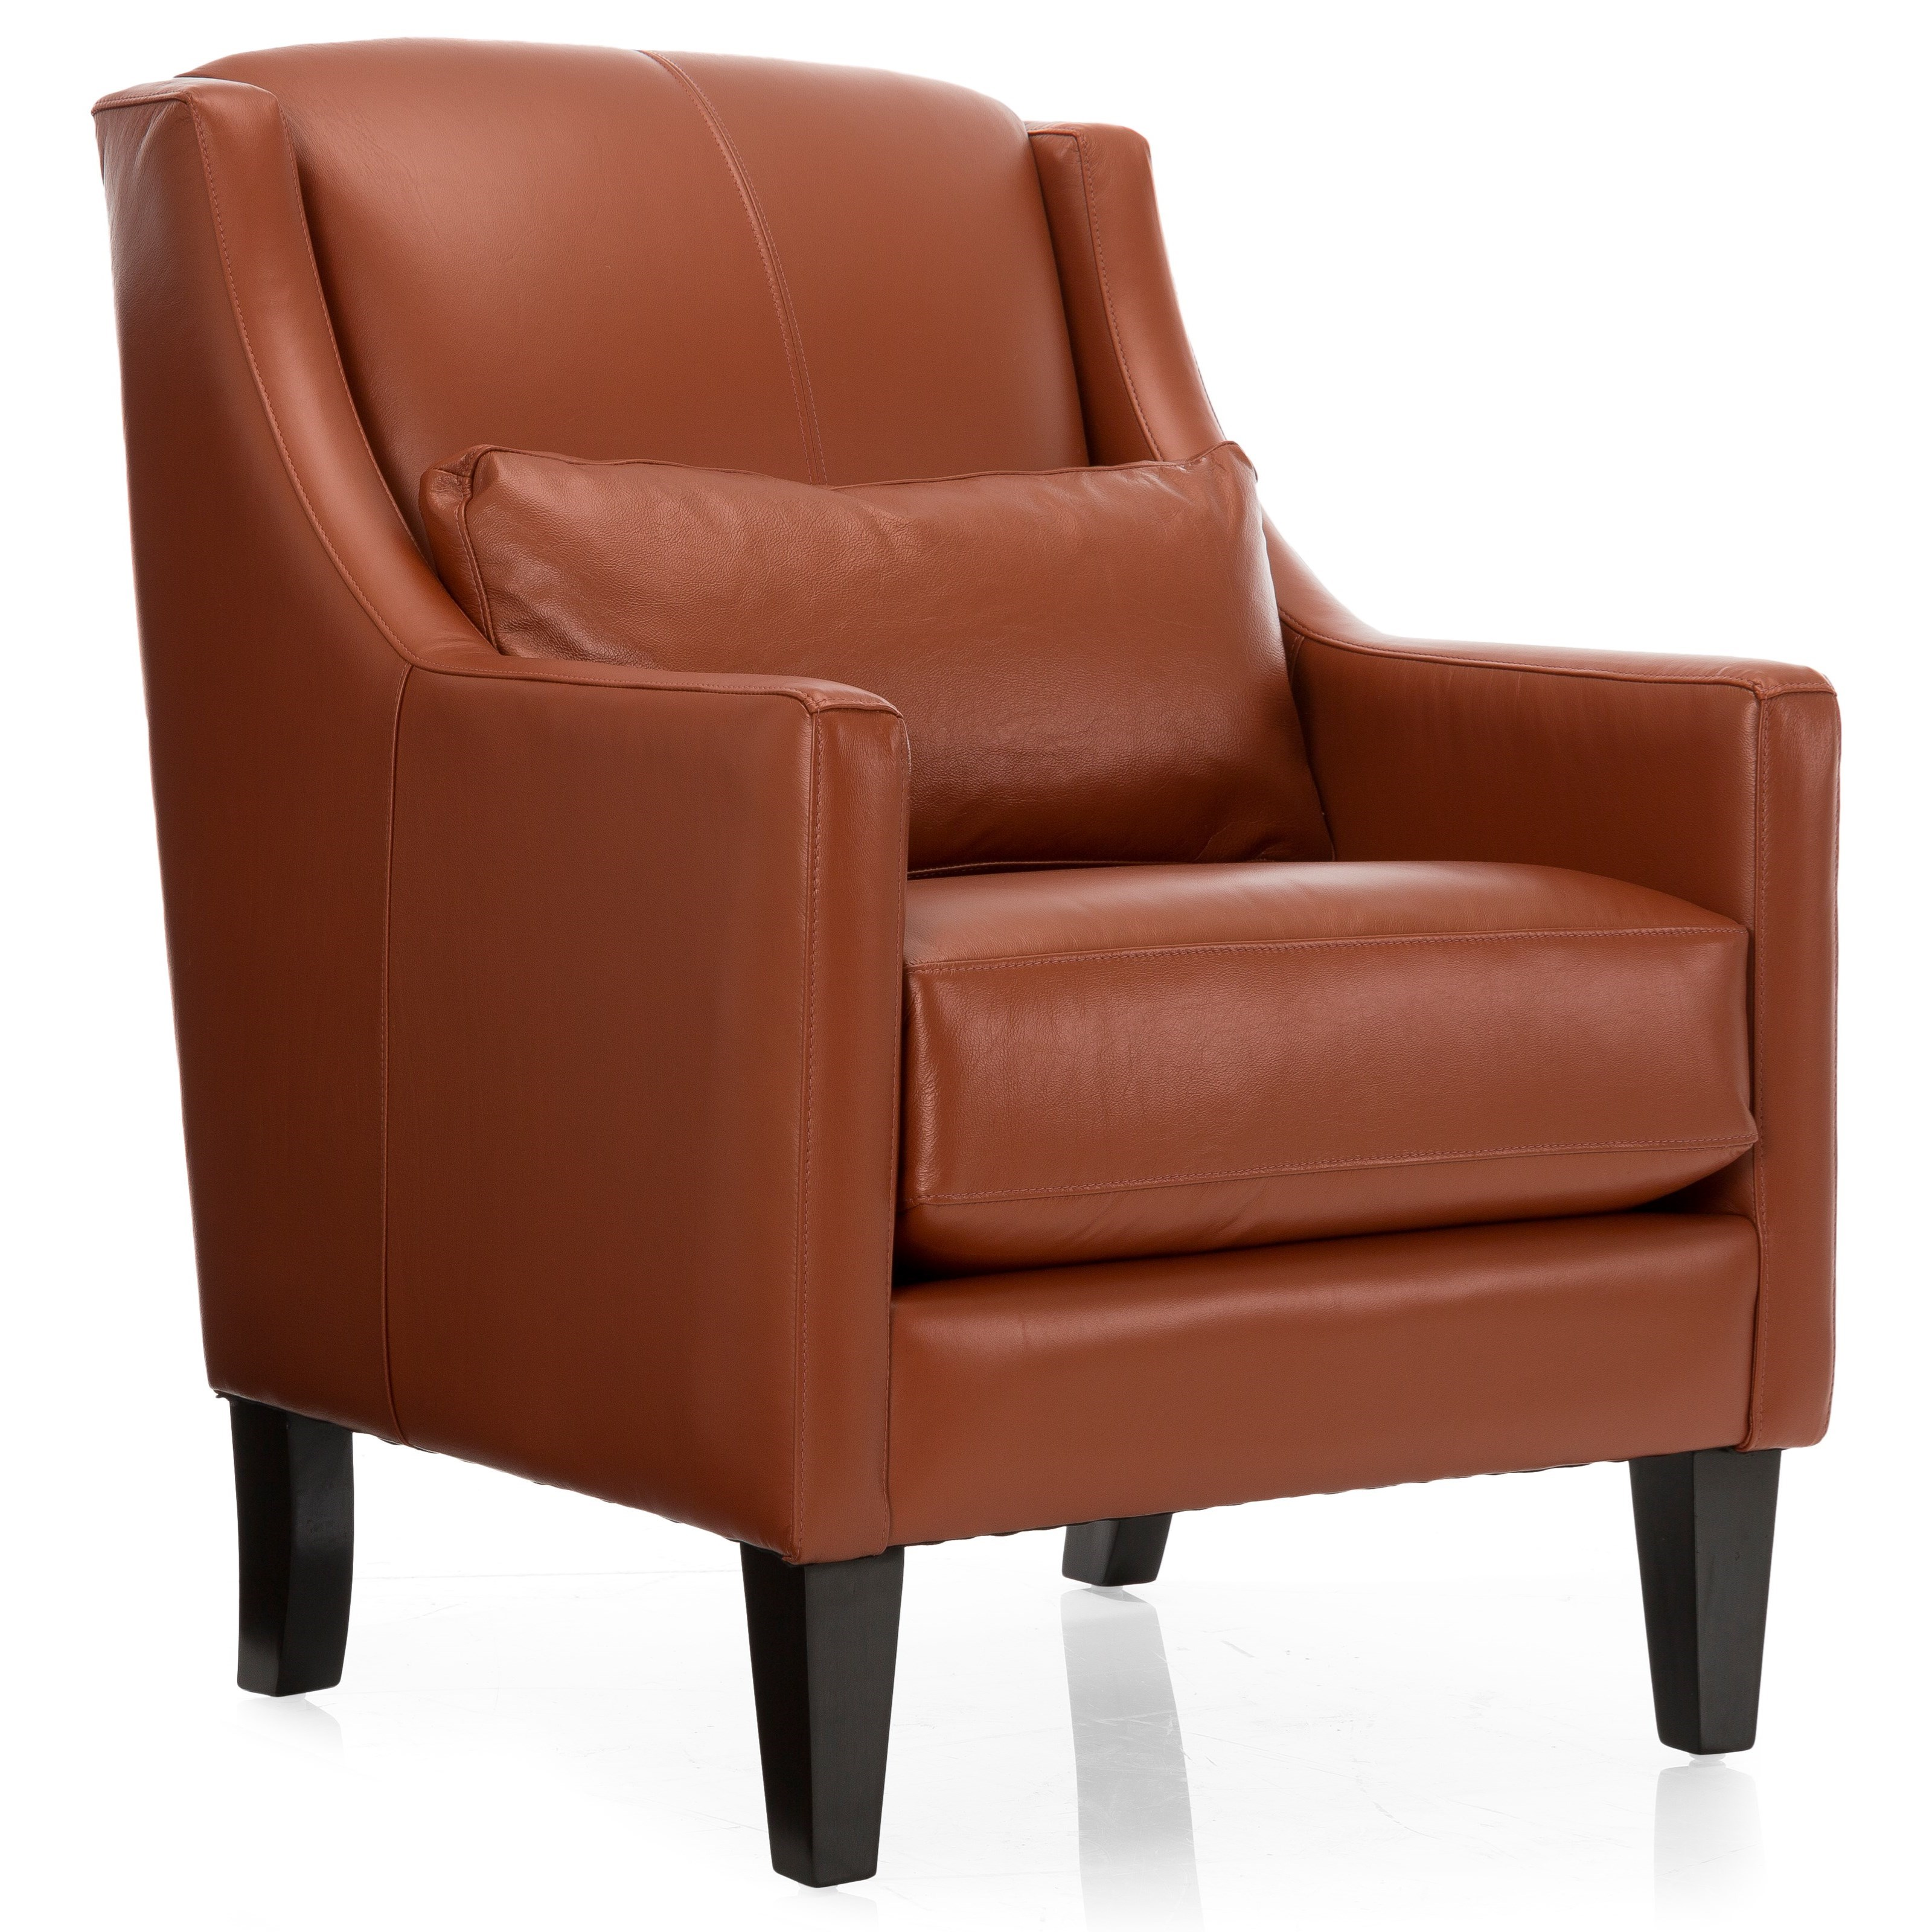 Decor-Rest 7606 Chair - Item Number: 7306 CHAIR-Brown